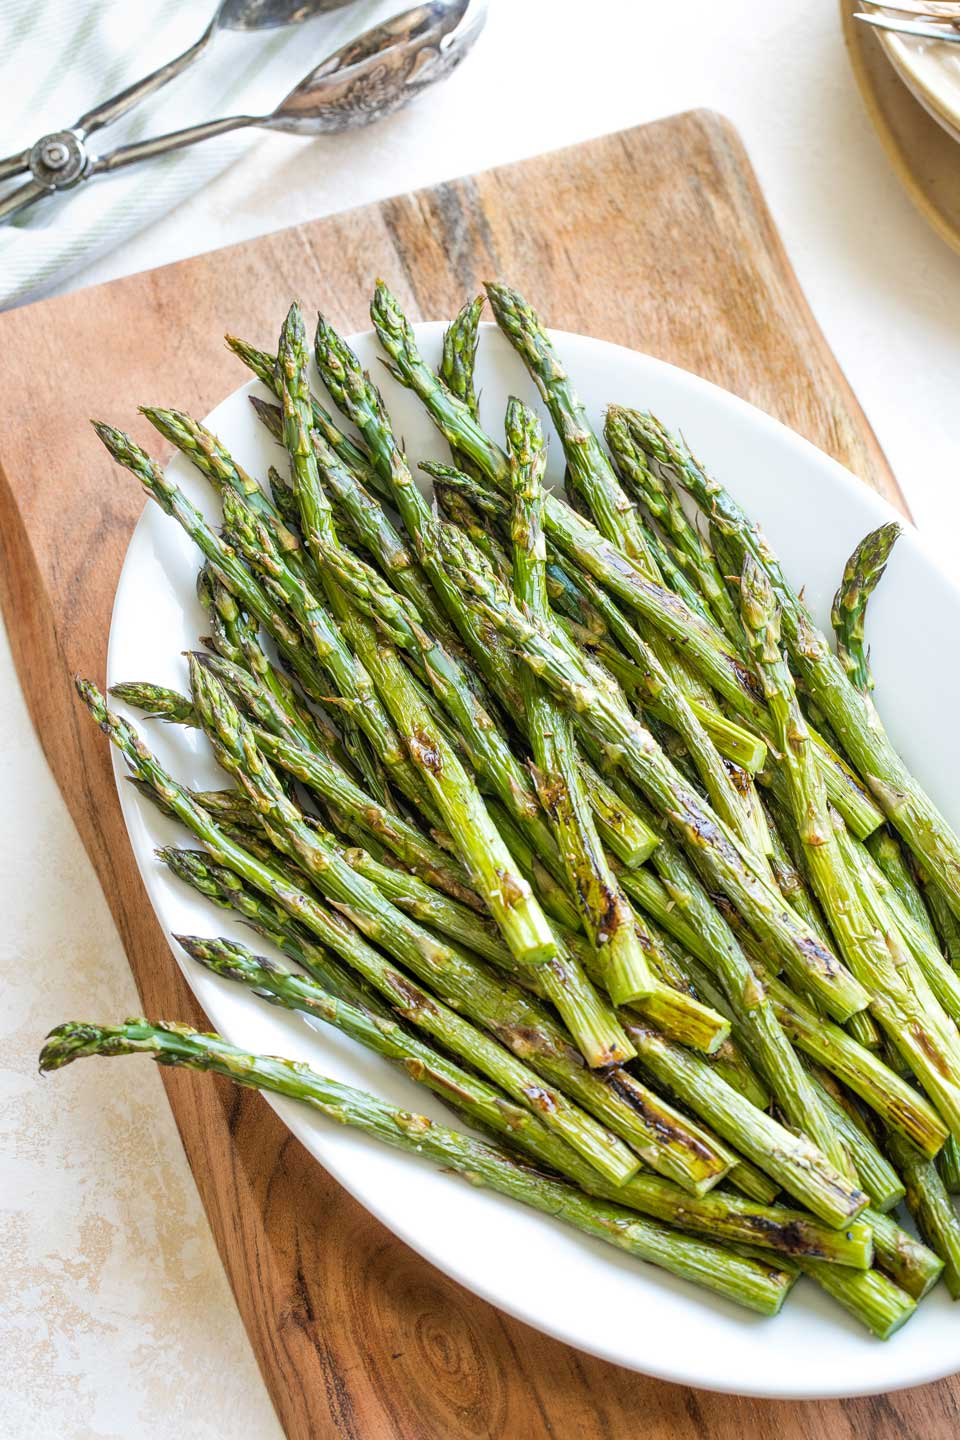 Overhead of the full white serving platter loaded with a serving of oven roasted asparagus, with serving tongs and a stack of plates and forks waiting nearby.